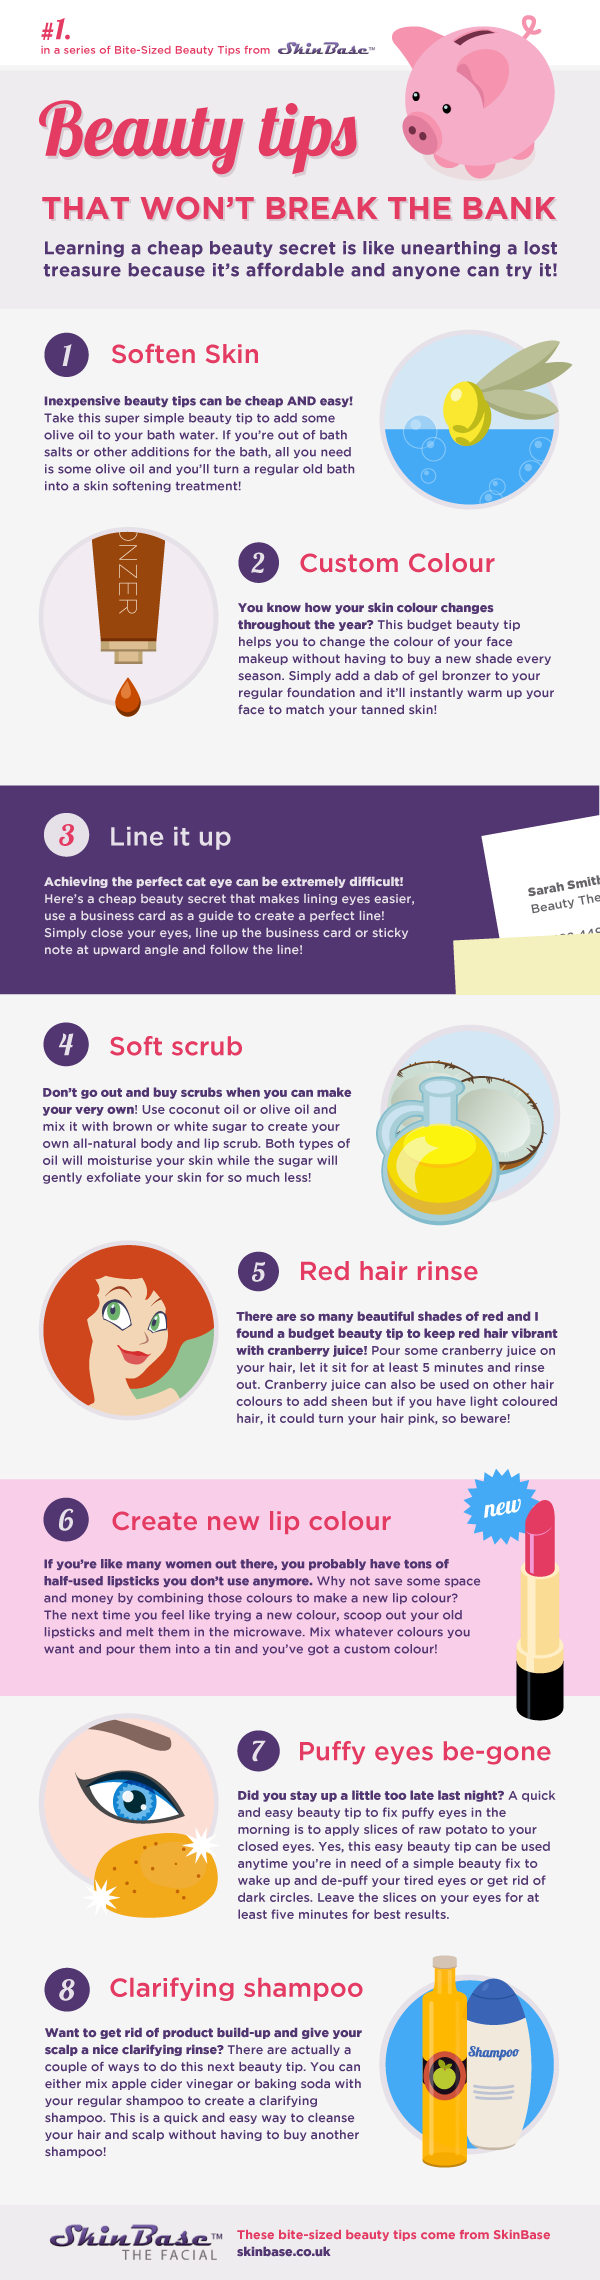 beauty tips for women